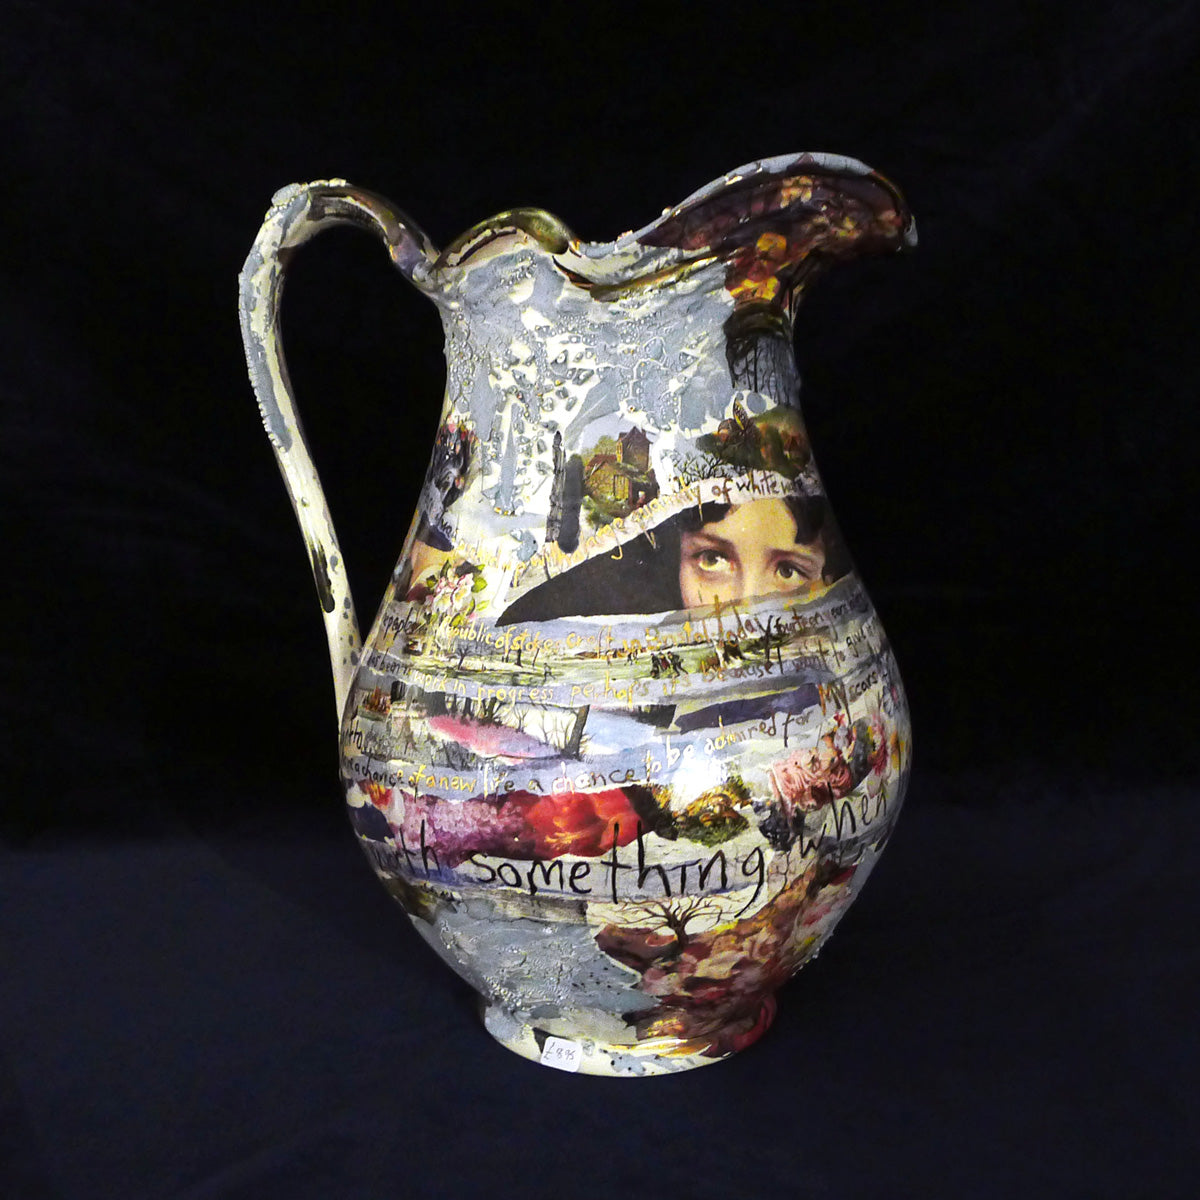 Meltdown Jug